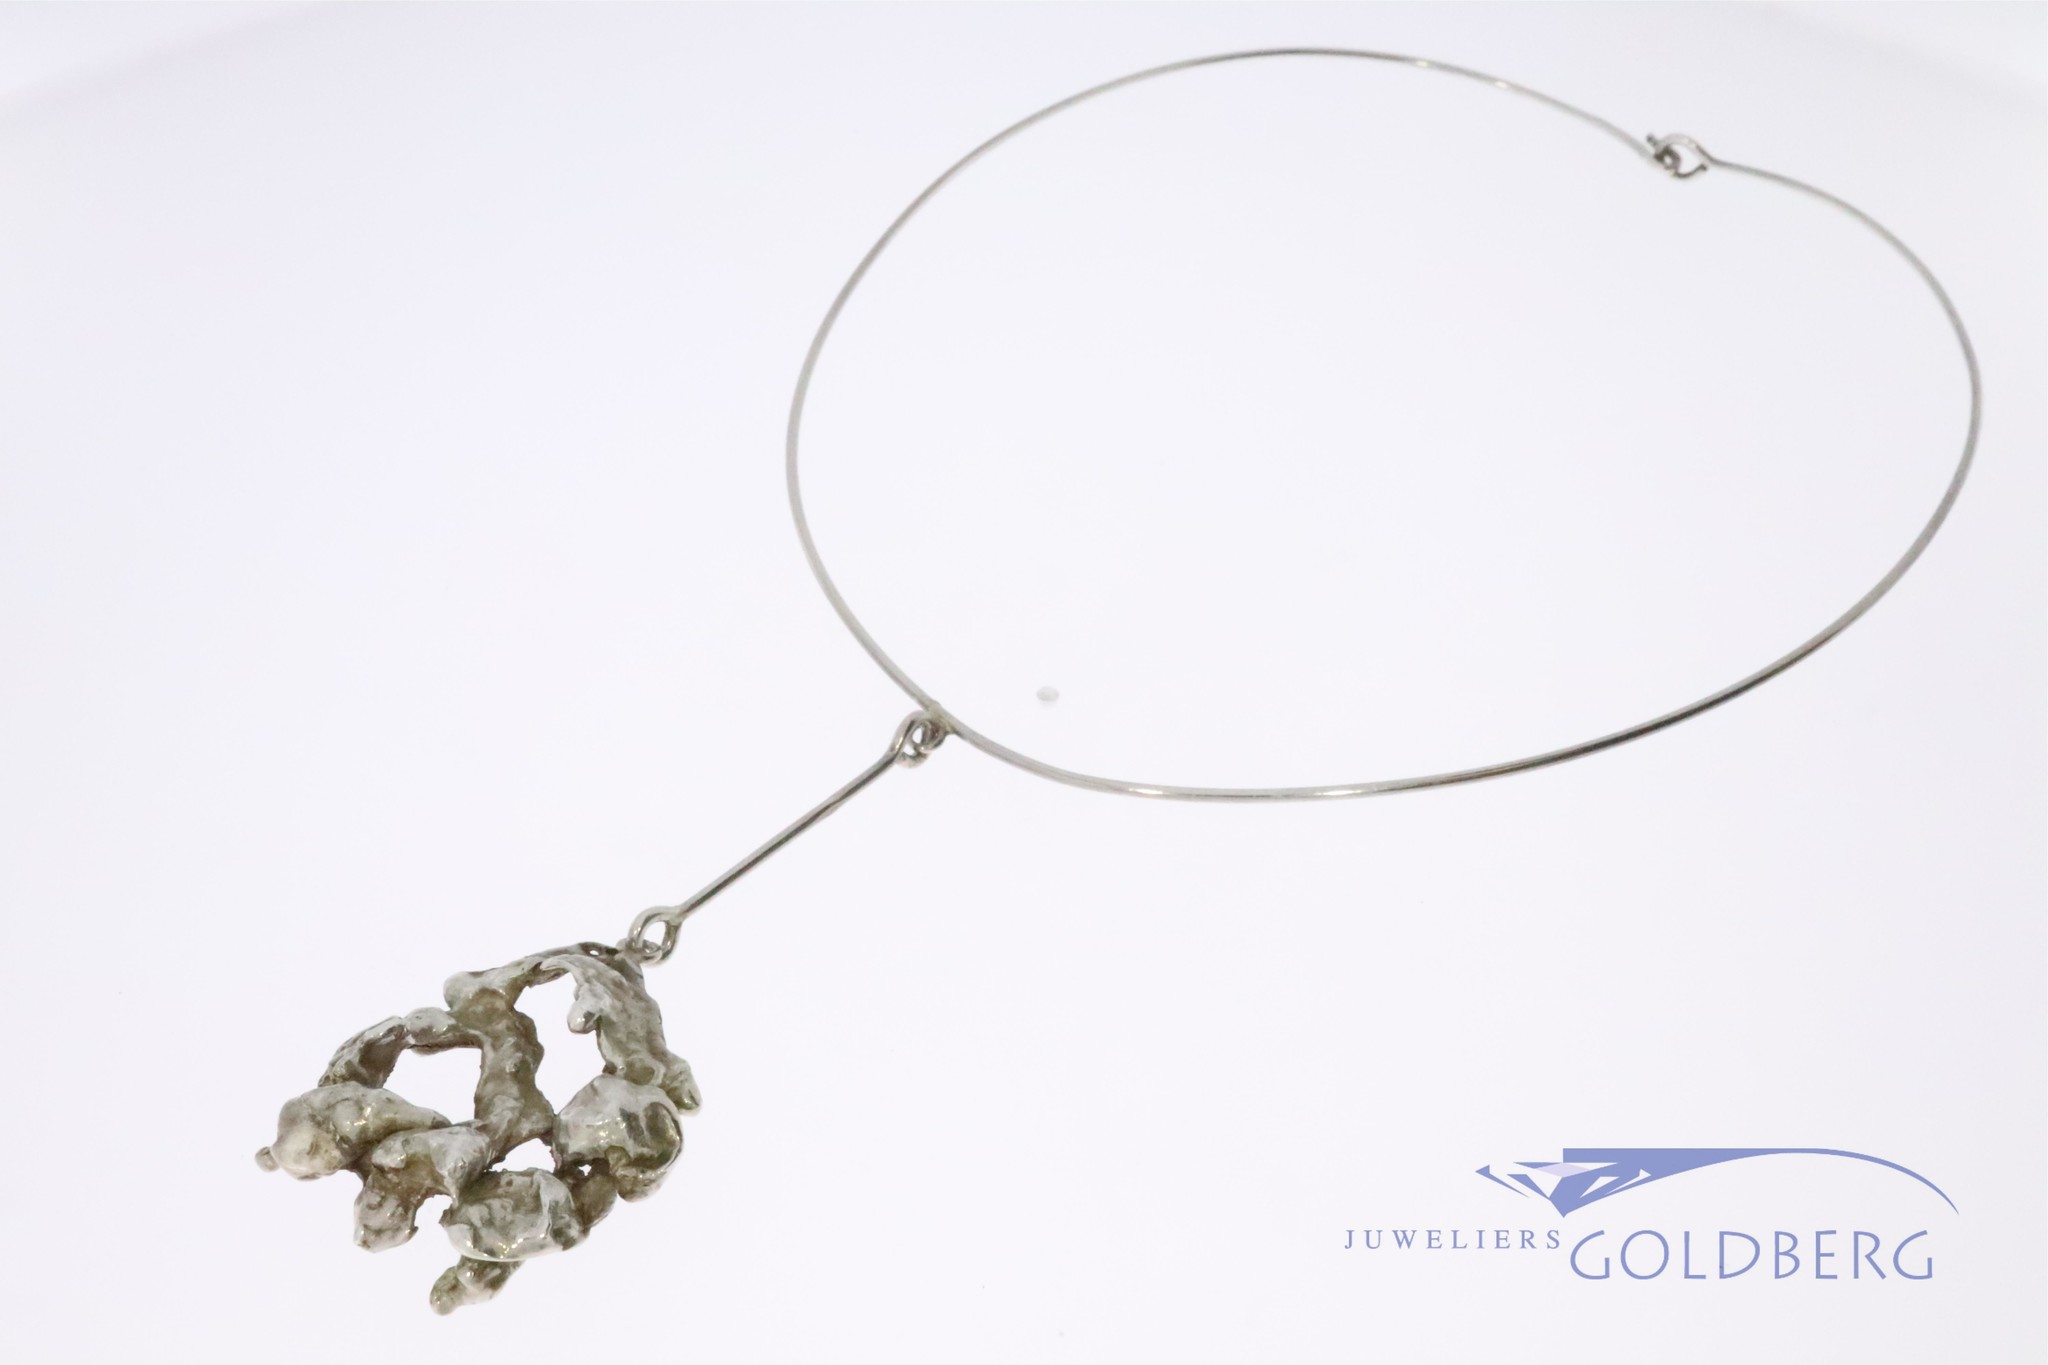 Vintage silver design necklace by famous Dutch sculptor Menno Meijer